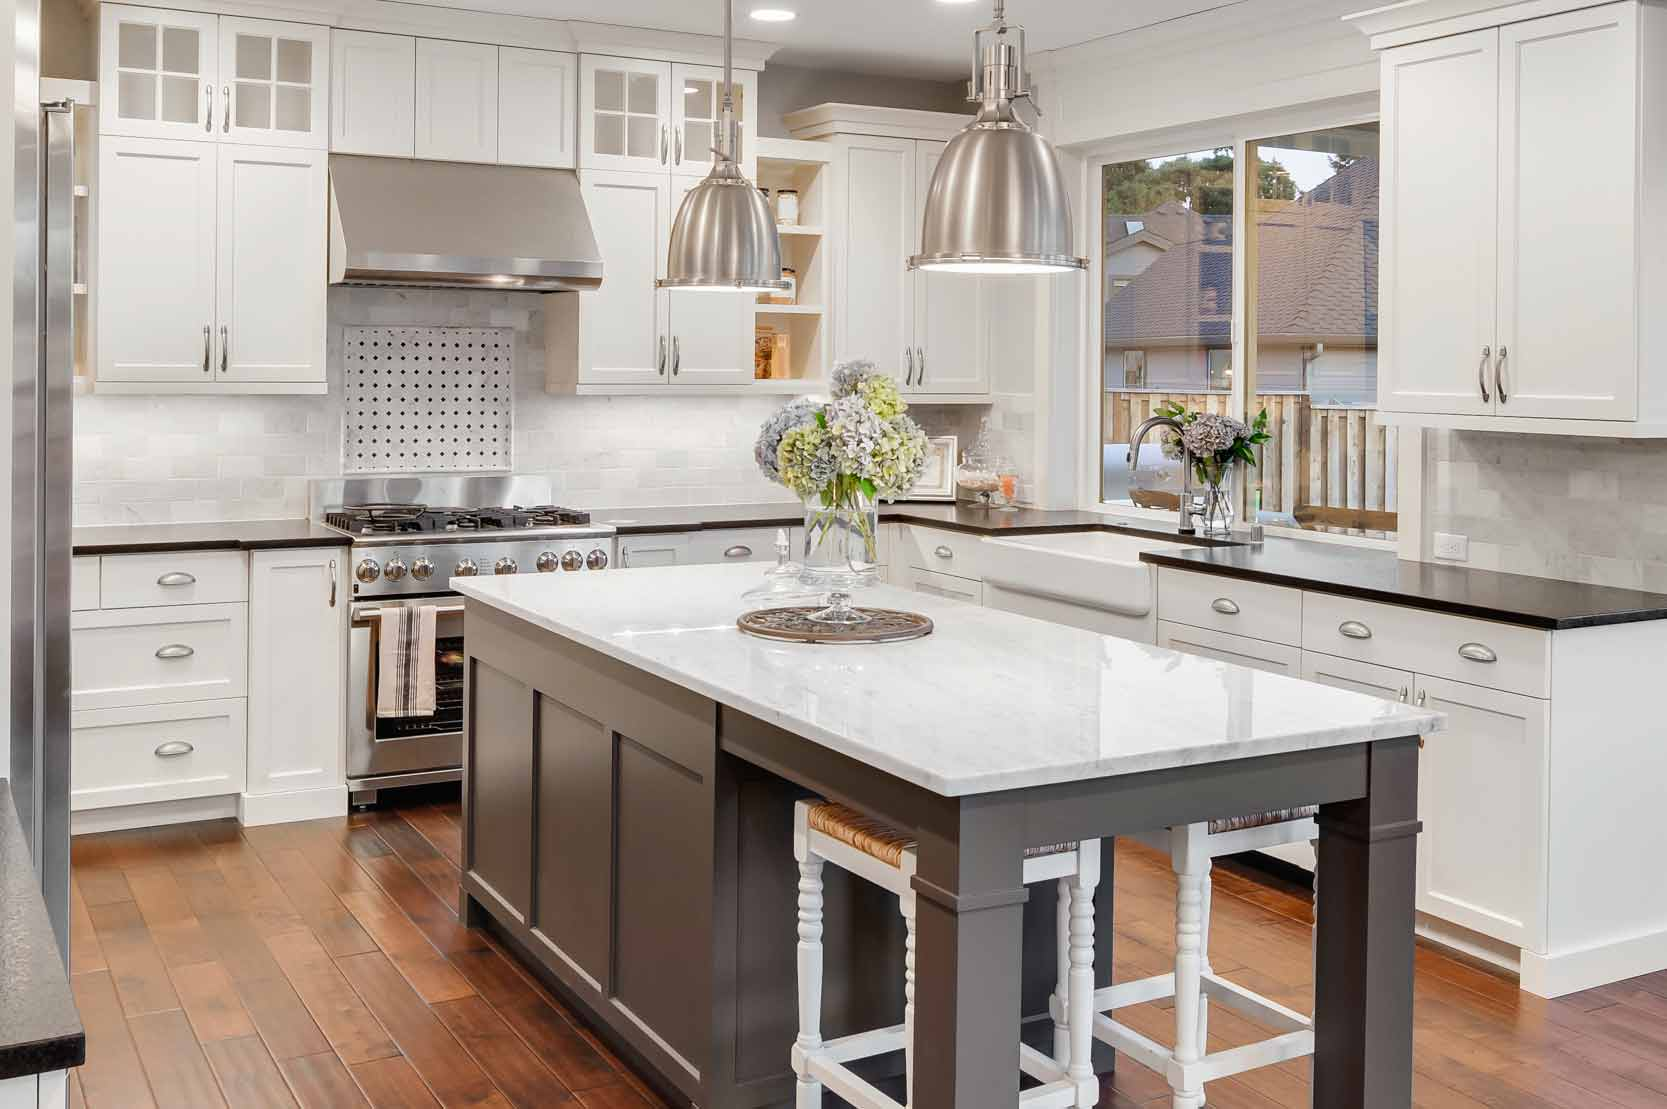 Country kitchens rosemount kitchens for Kitchen styles